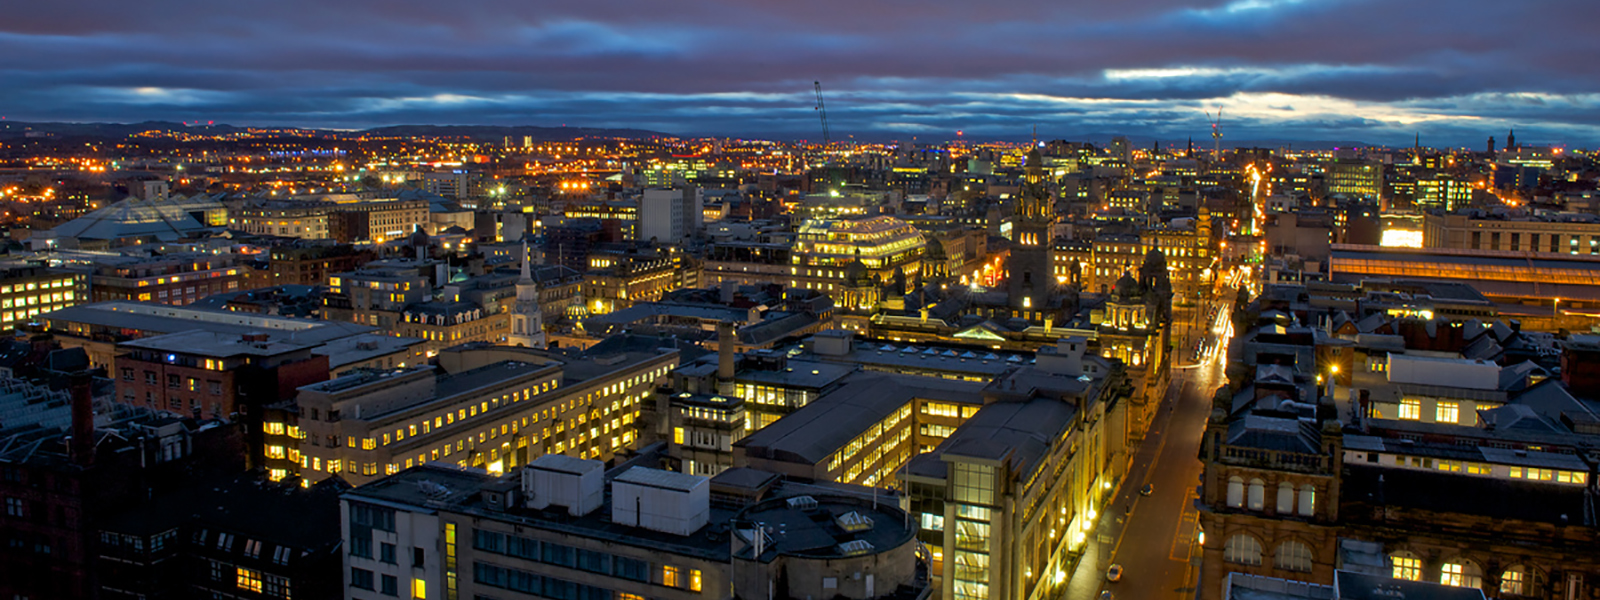 Glasgow city centre at dusk. View from the Livingstone Tower